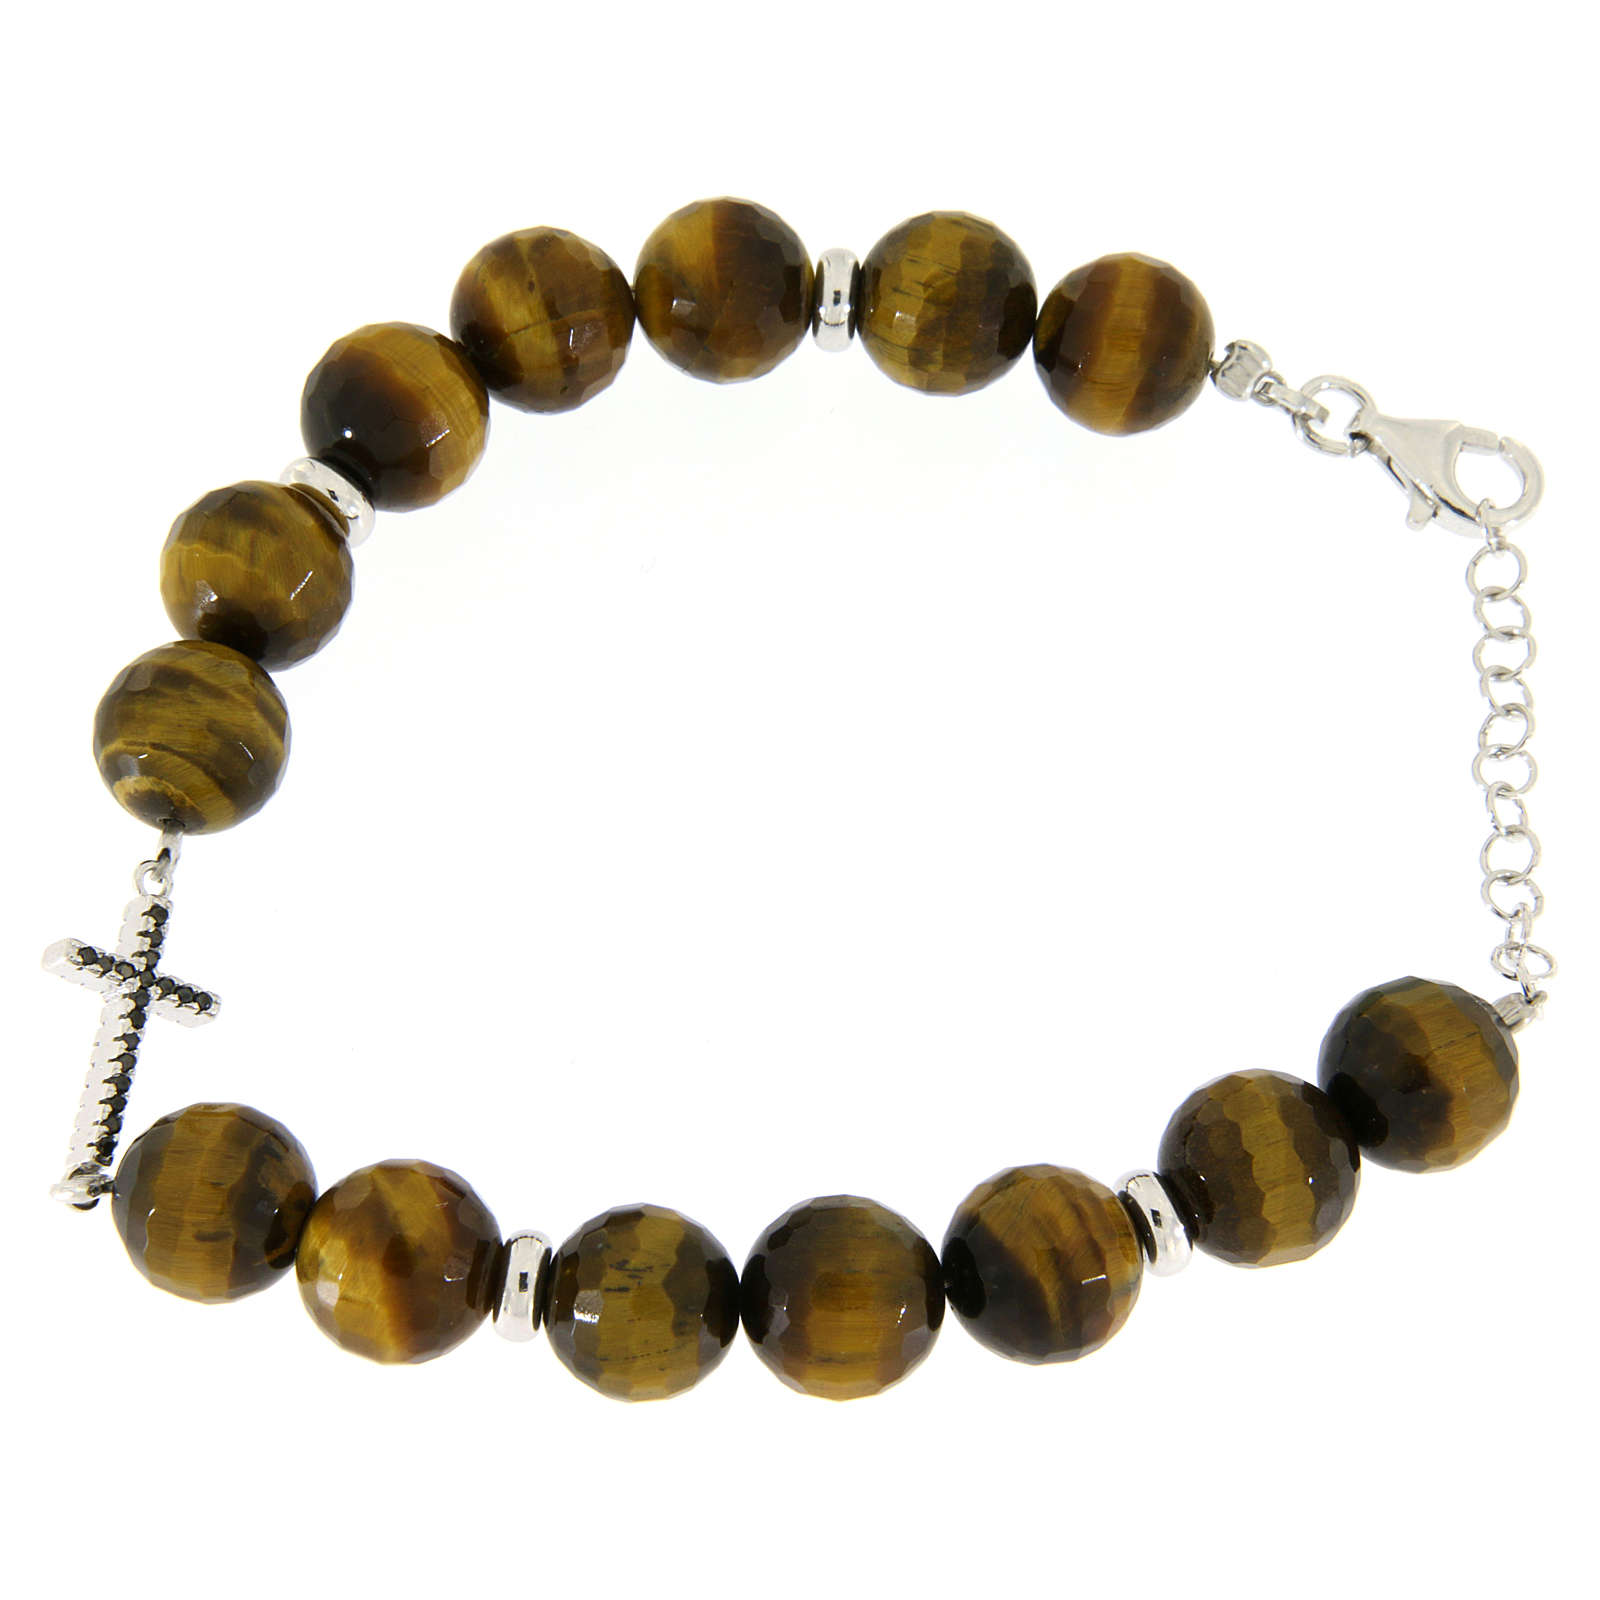 Bracelet with tiger's eye stones sized 9 mm, black zirconate cross and silver details 4